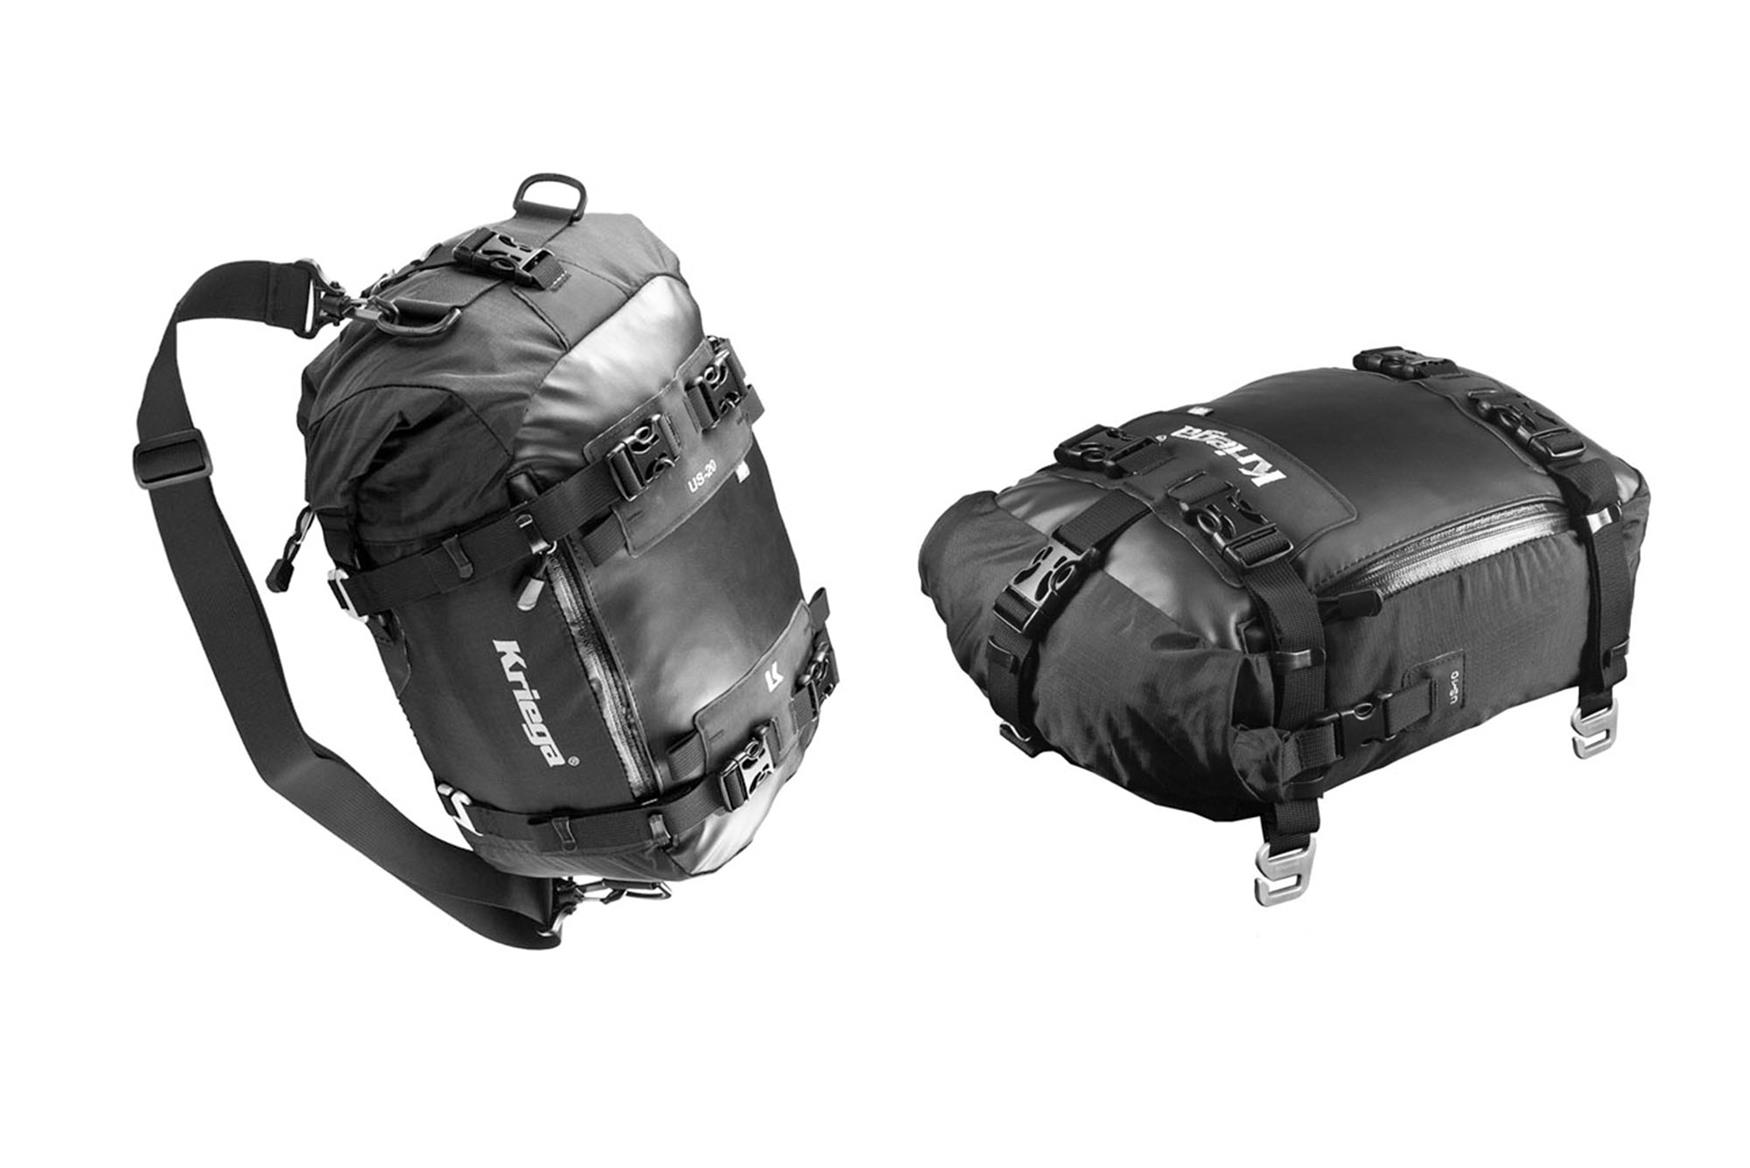 Kriega US-20 & US-10 Dry Bag